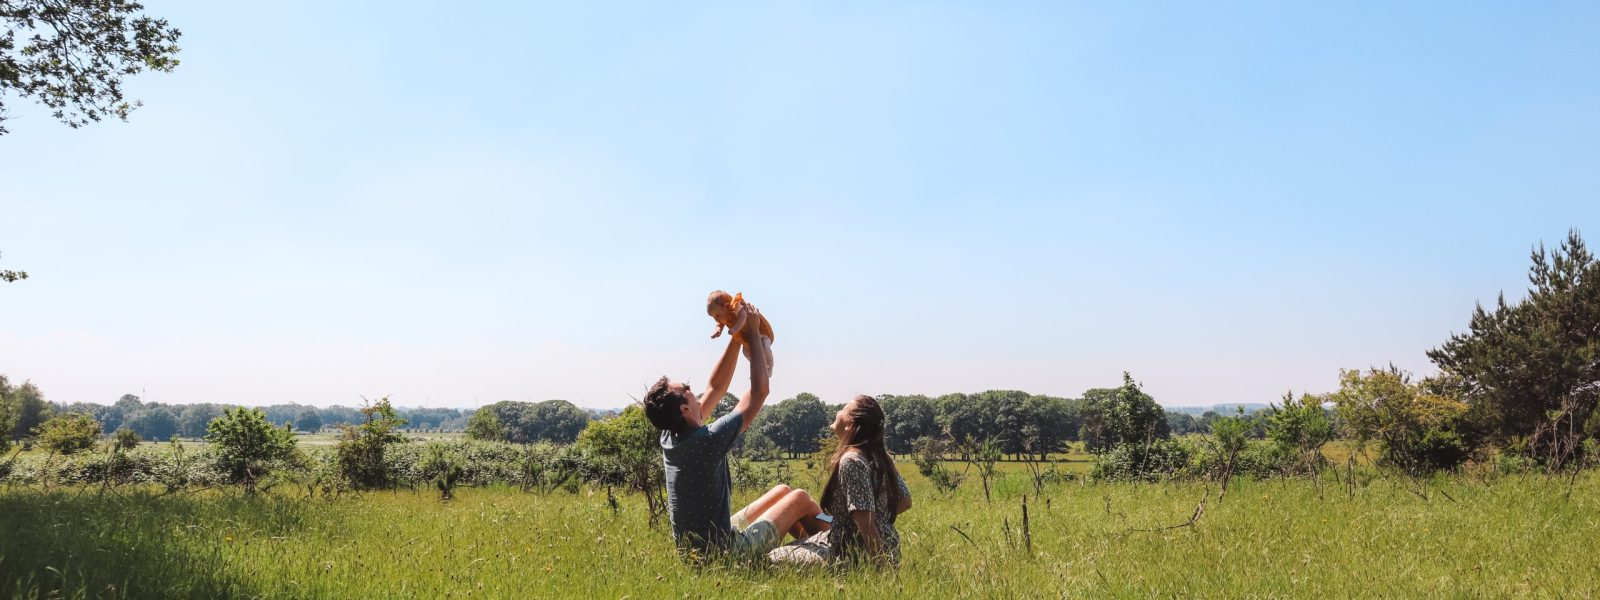 Baby News from a Travel Family